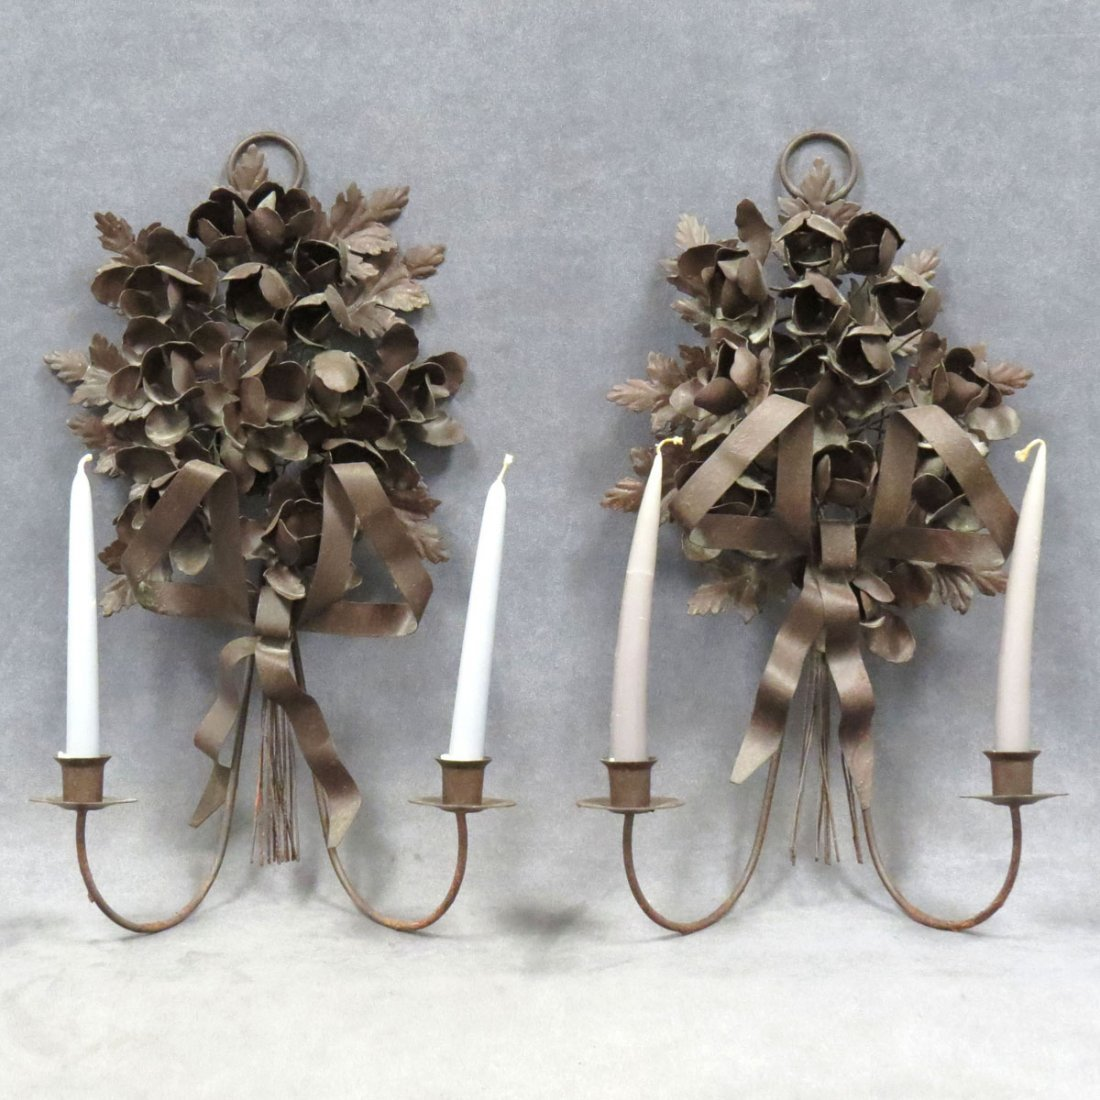 PAIR FRENCH STYLE METAL CANDLE SCONCES